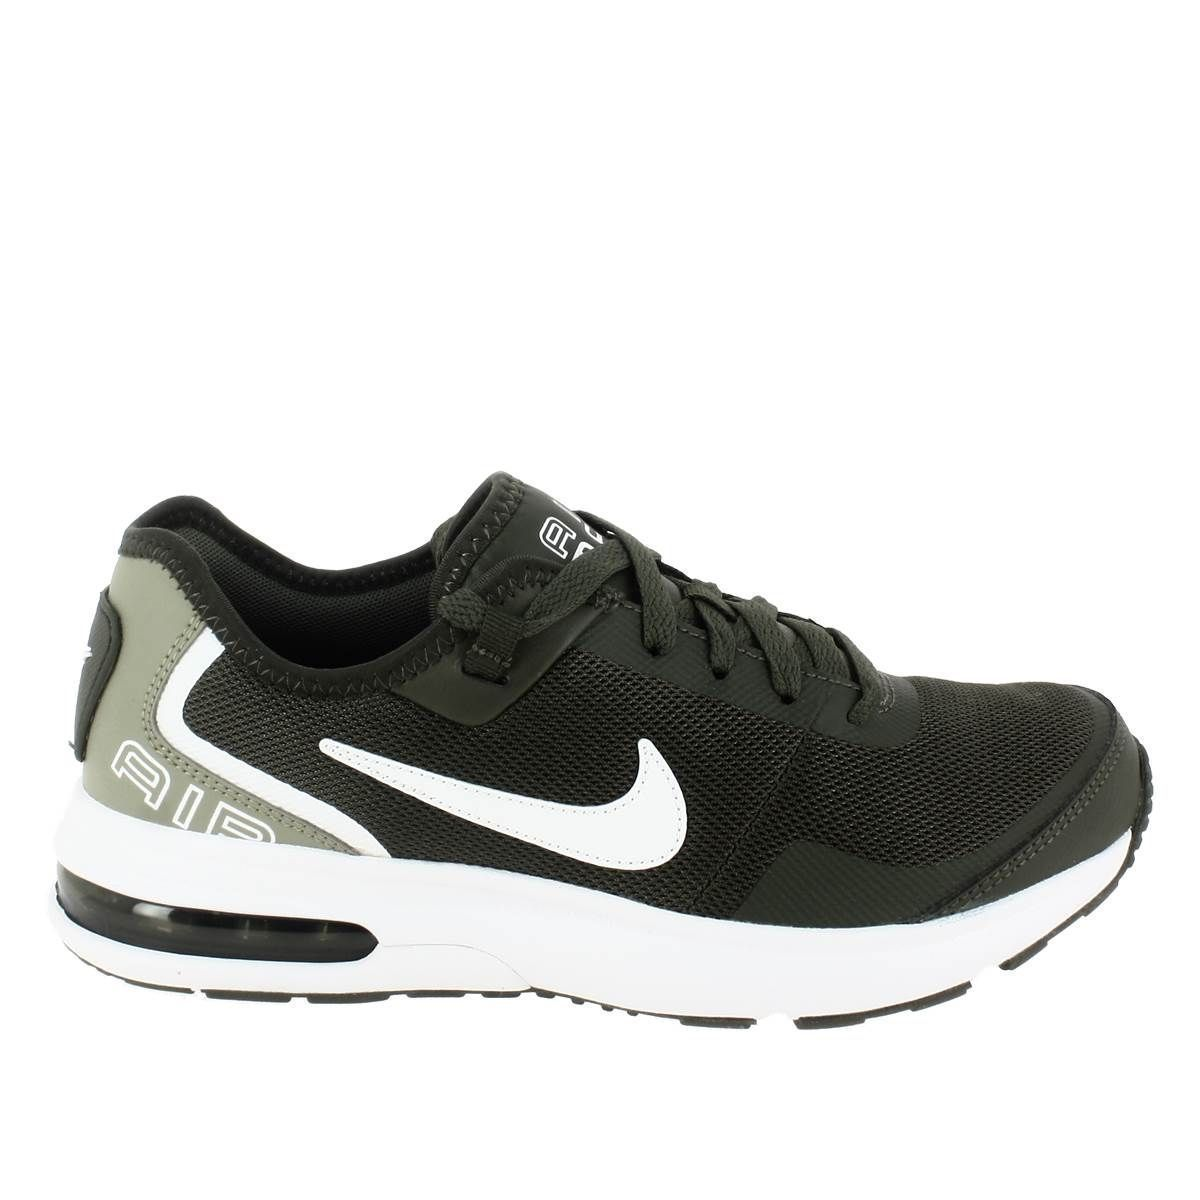 STONE ONE LOZ AIR MAX LB BG:SYNTHETIQUE, MESH/TEXTILE/CAOUTCHOUC/Kaki